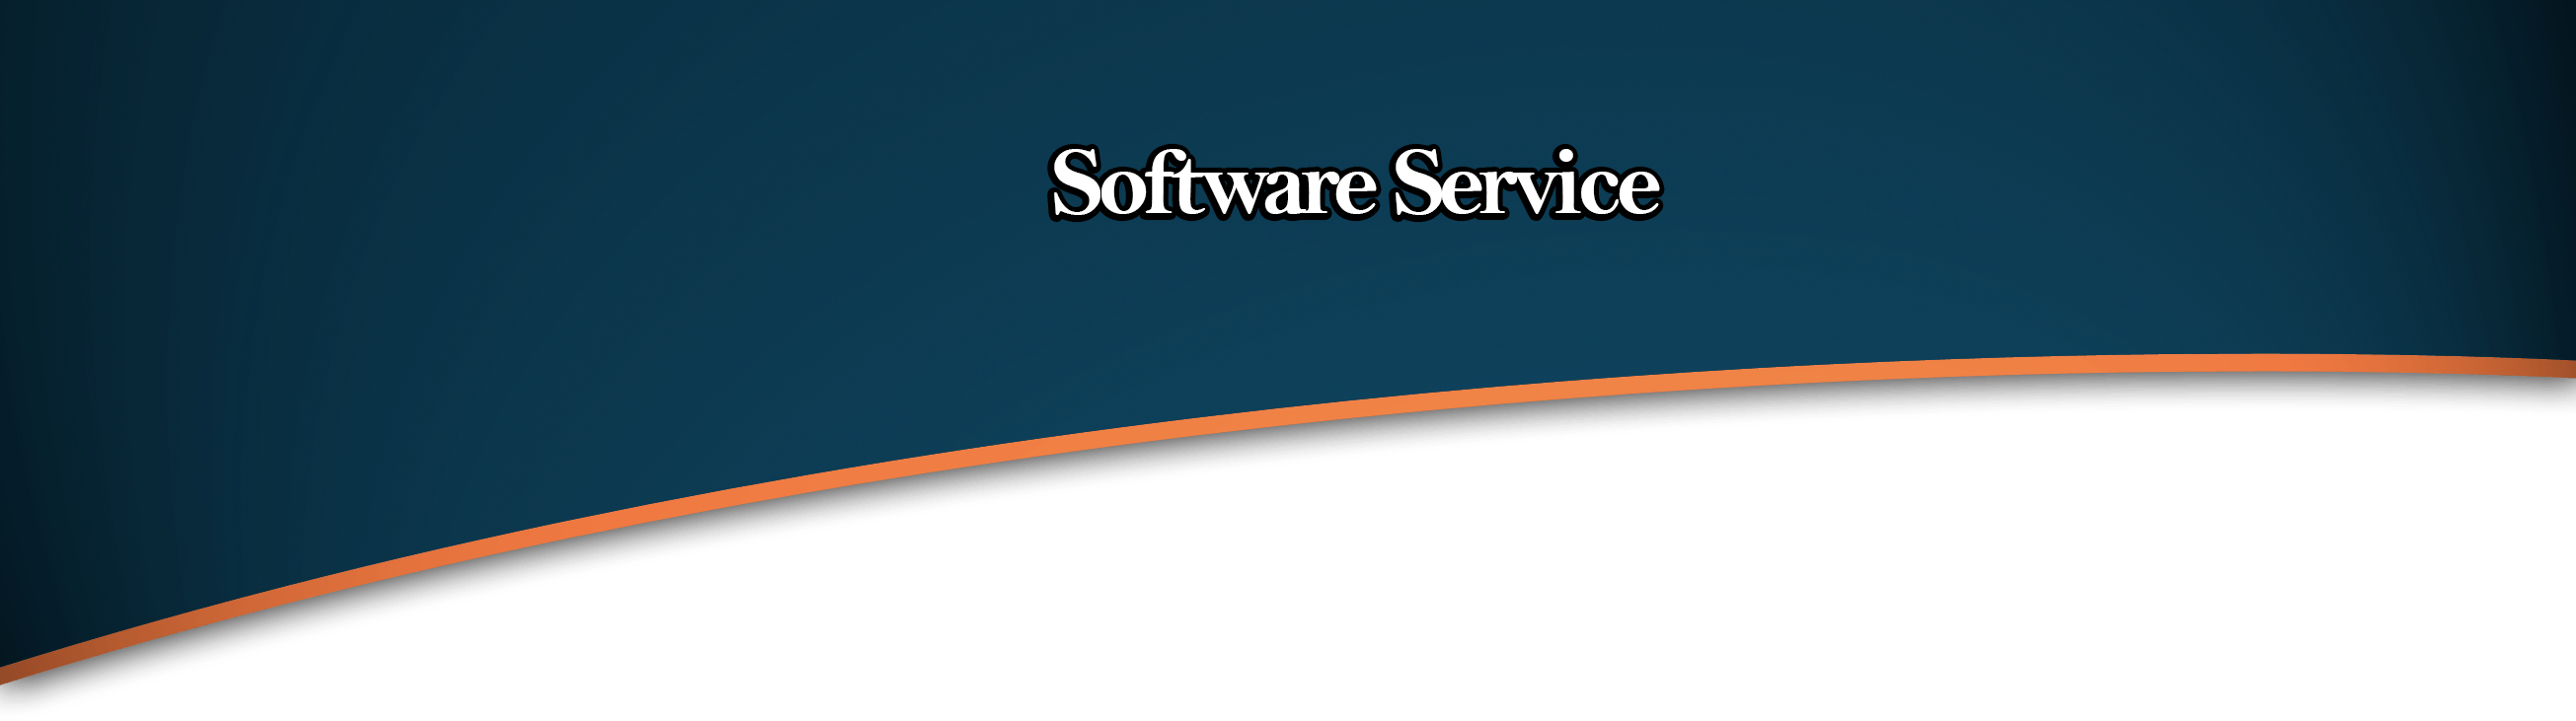 Software service